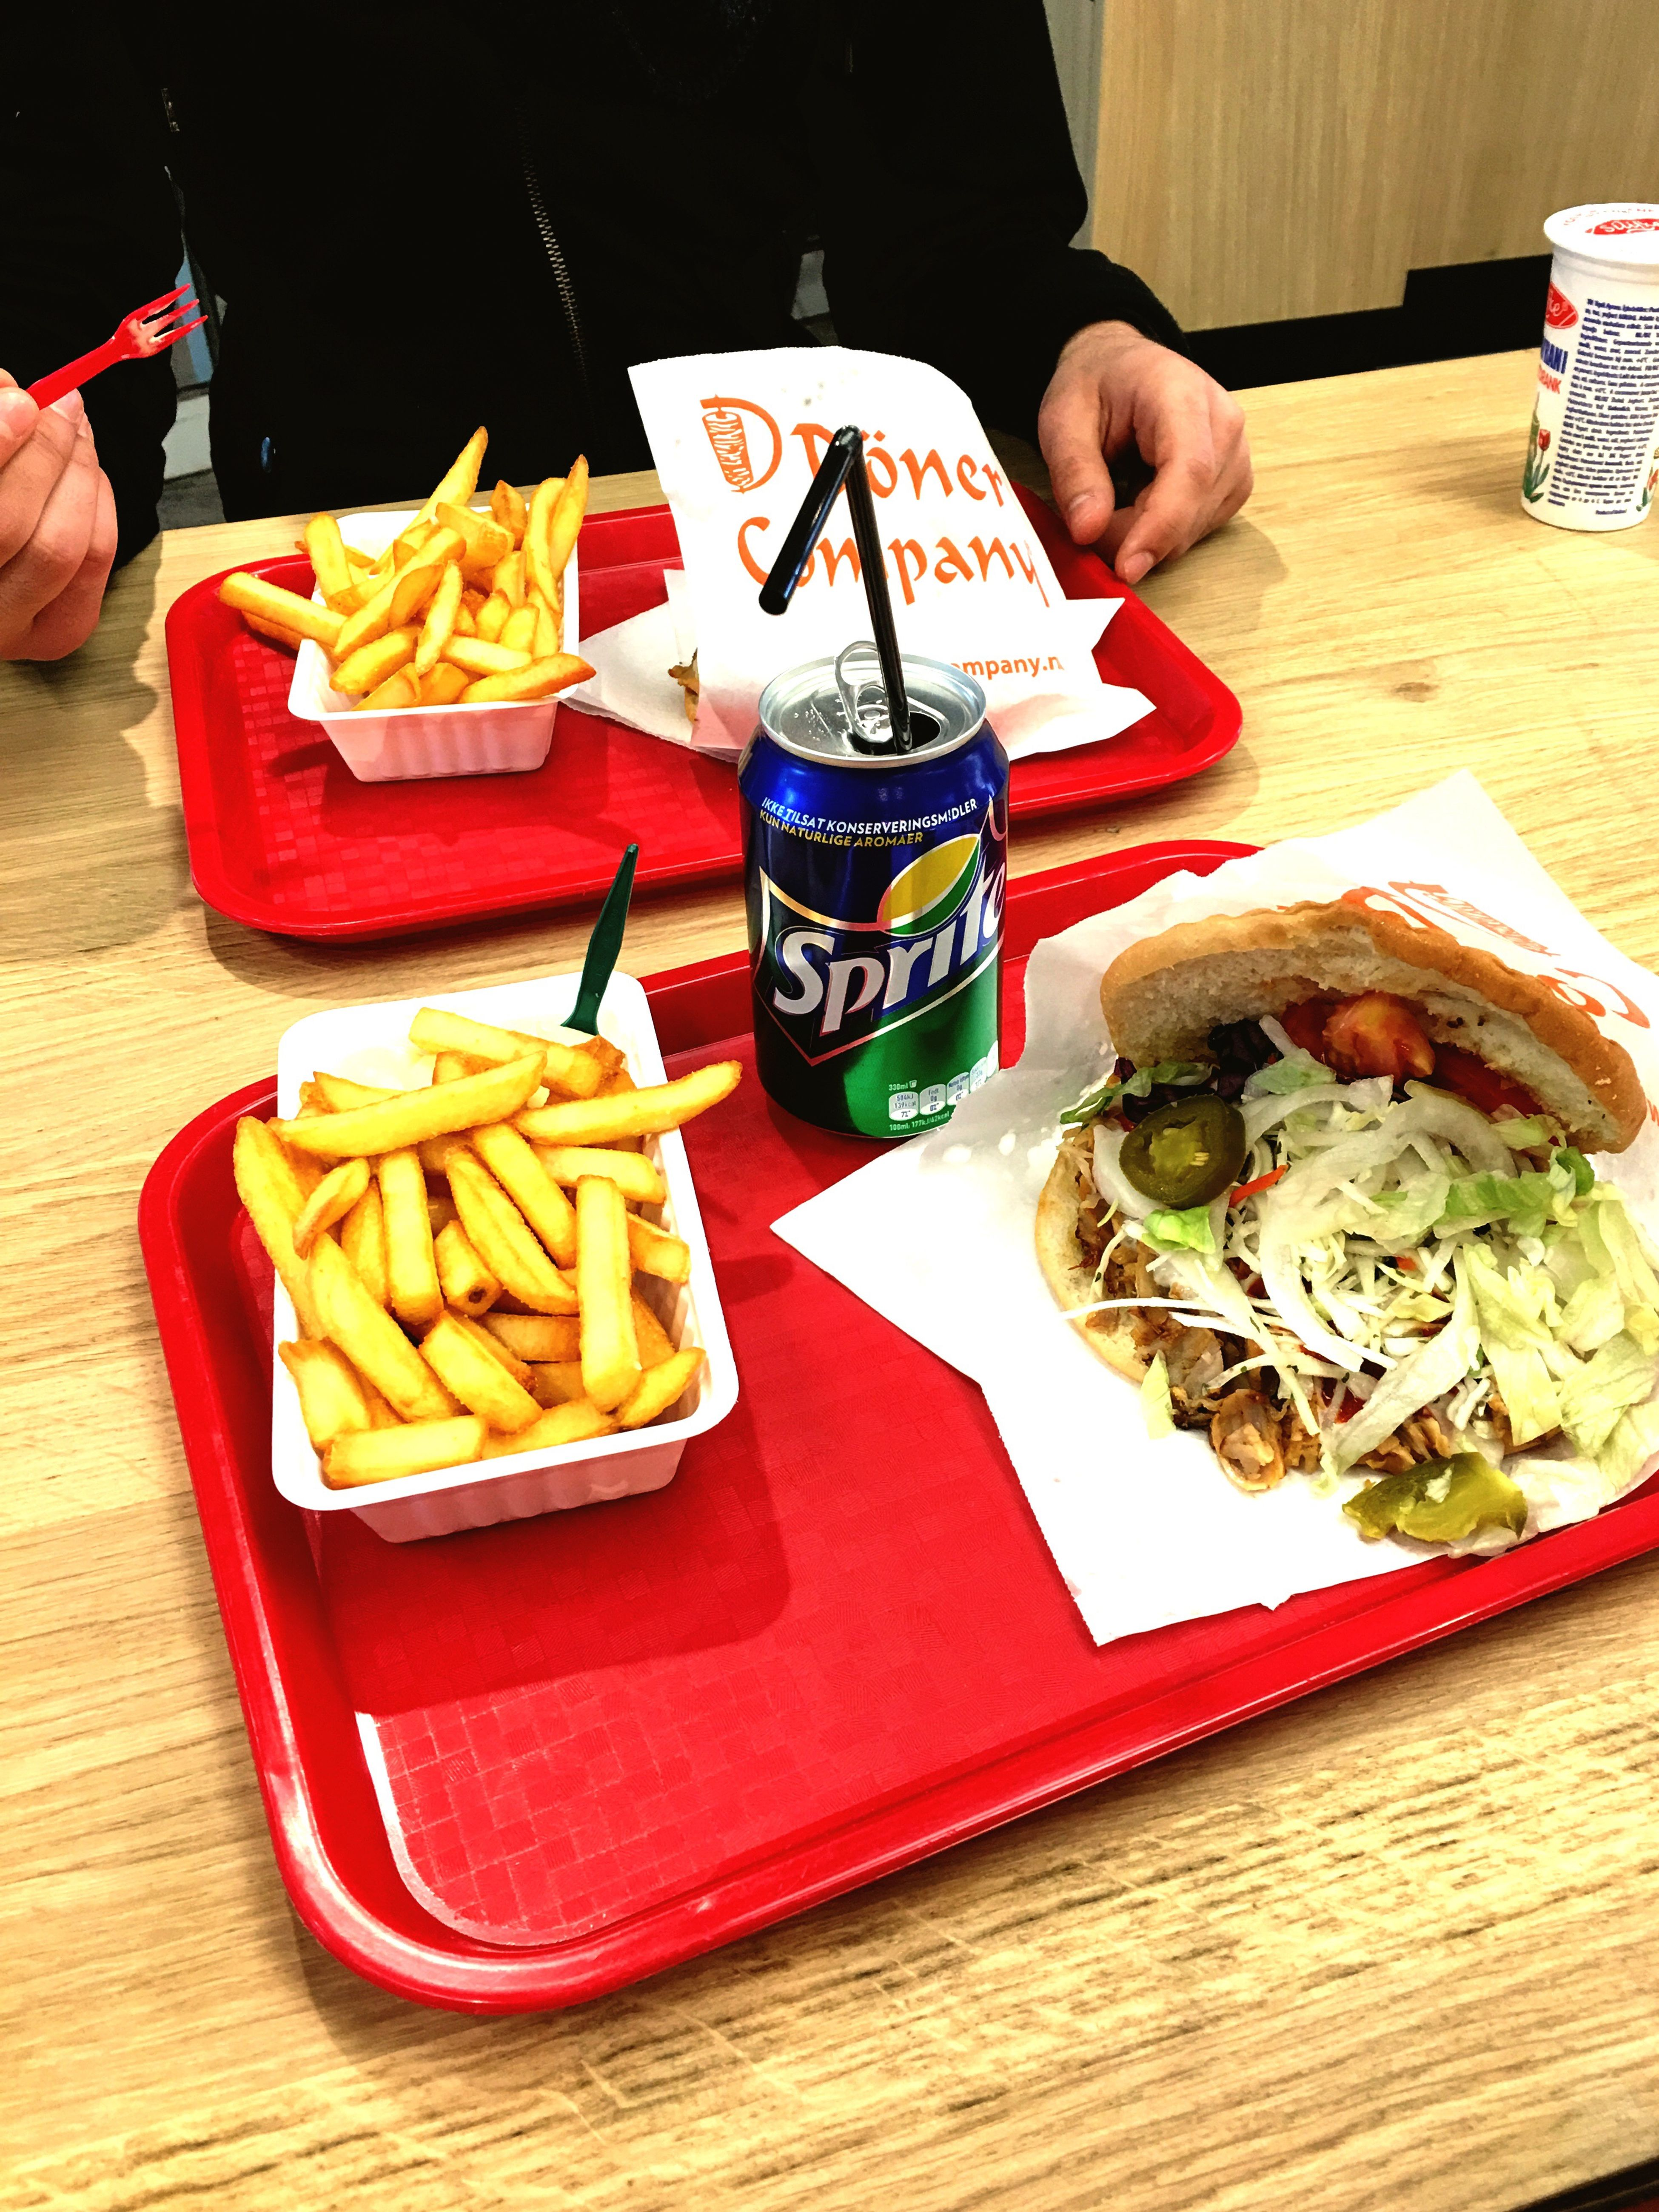 Show Us Your Takeaway! @Döner Company Hello World IPhoneography The Netherlands MyVistaNL Hanging Out The Hague Den Haag Turkish Take A Way Yummy